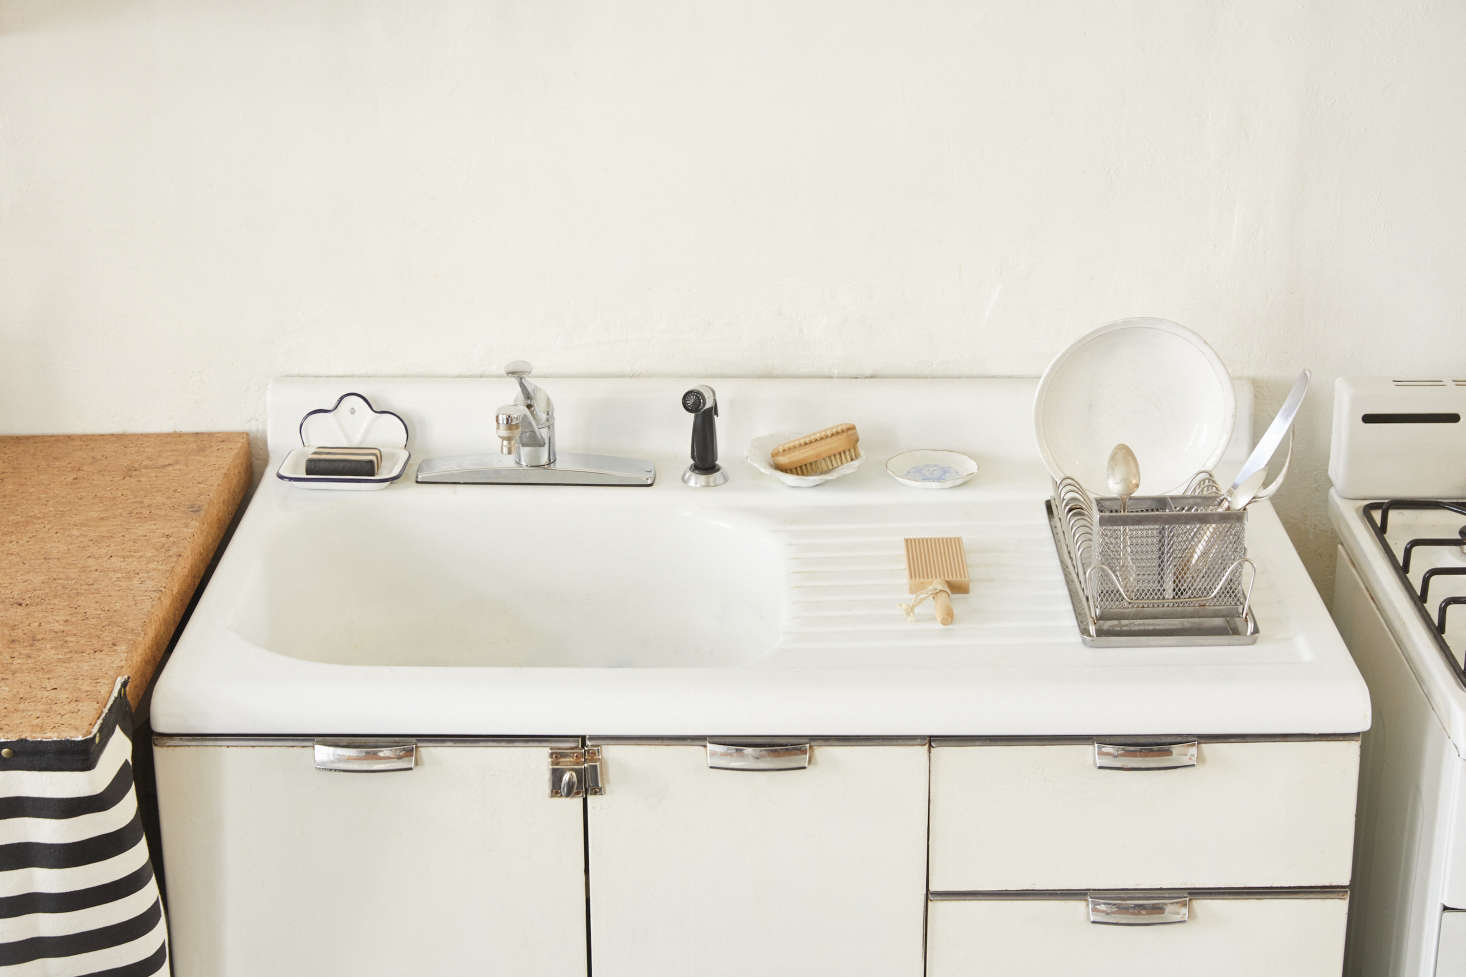 The vintage enamel and metal sink cabinet is outfitted with anEnamel Soap Dish and a Polder Stainless Steel Dish Rack. The dishes are fromAstier de Villatte and thewoodGnocchi Board is, improbably, from Bed, Bath & Beyond.